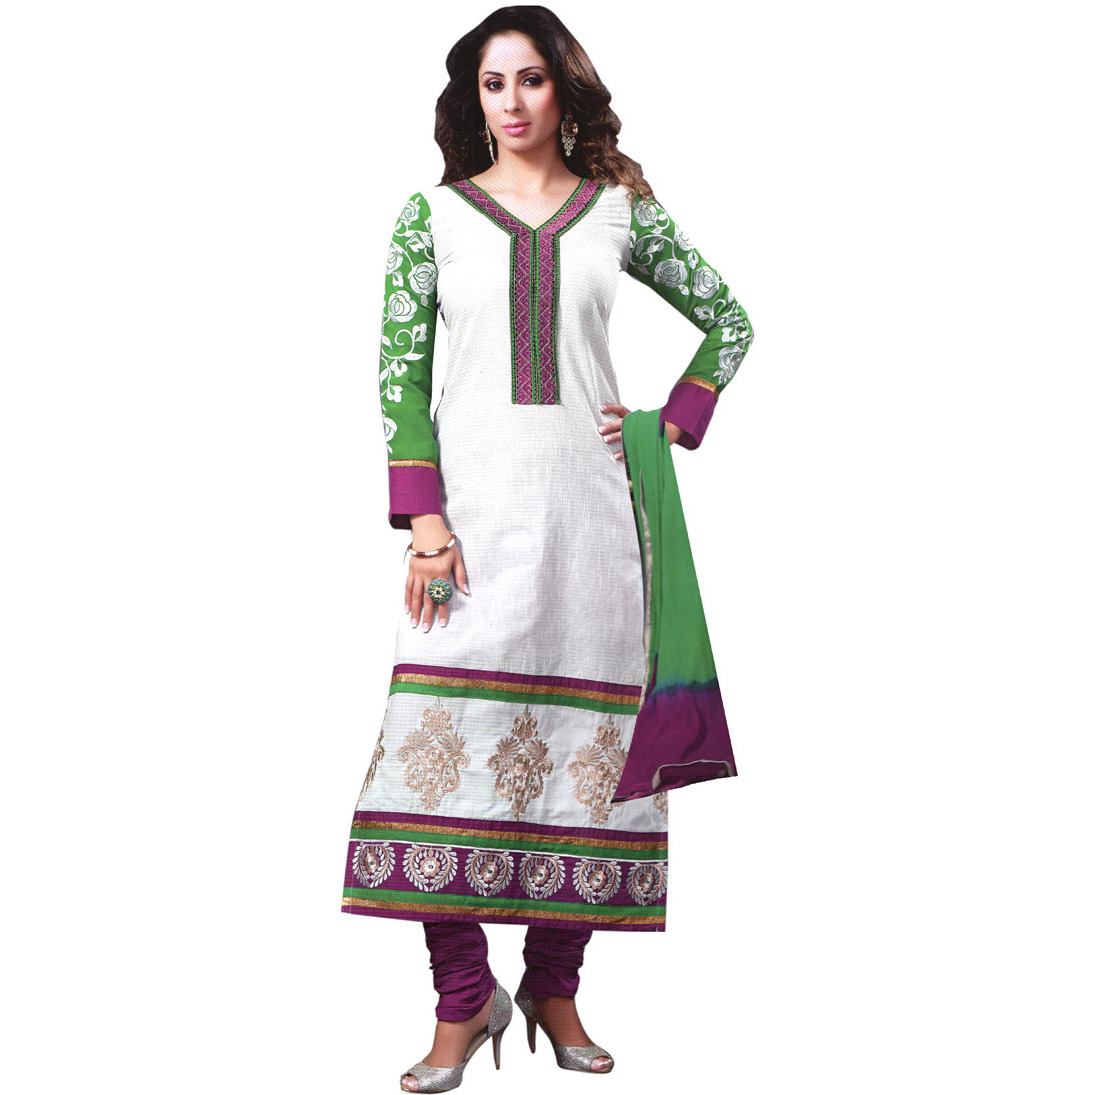 Snow-White Long Choodidaar Kameez Suit with Embroidered Patch and Printed Motifs at Back